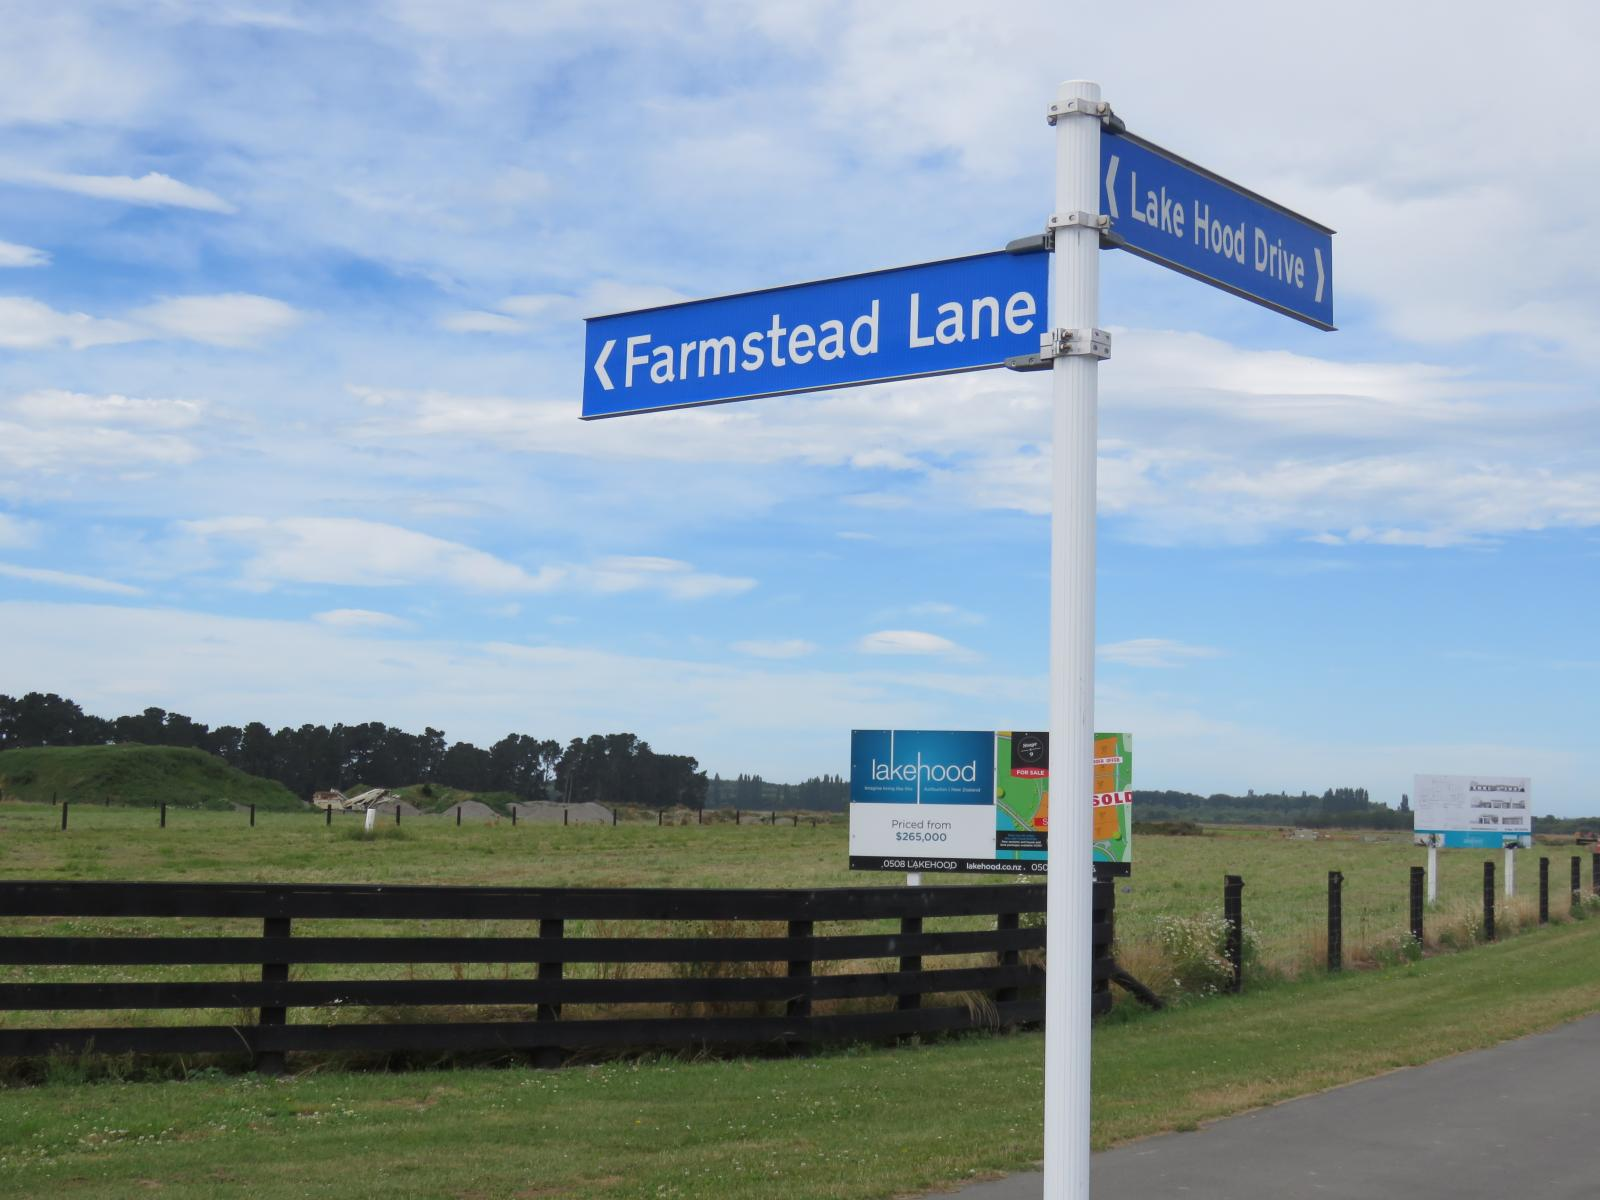 Lot 31, Stage 9, Farmstead Lane, Lake Hood, Huntingdon